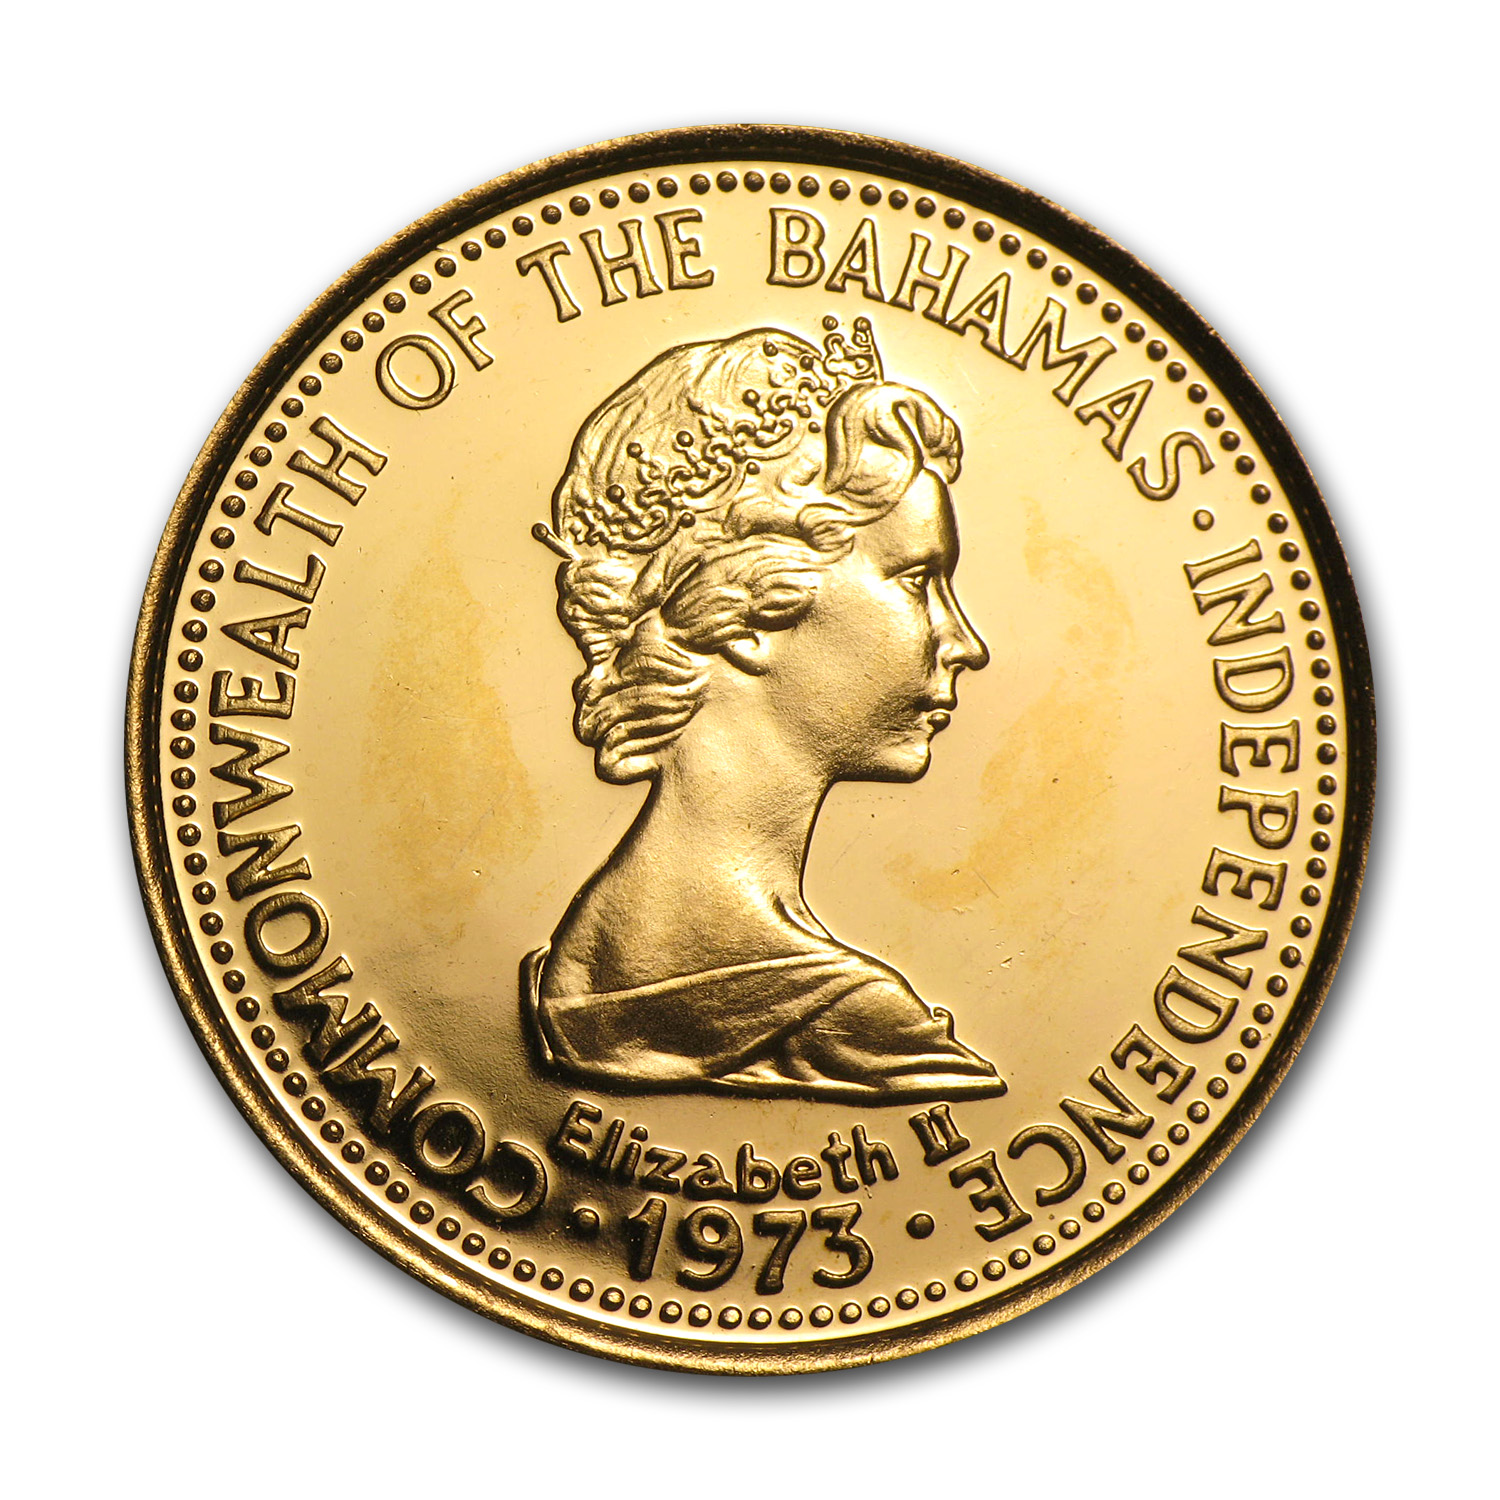 Bahamas 1973-77 150 Dollar Gold Proof/BU Lobster